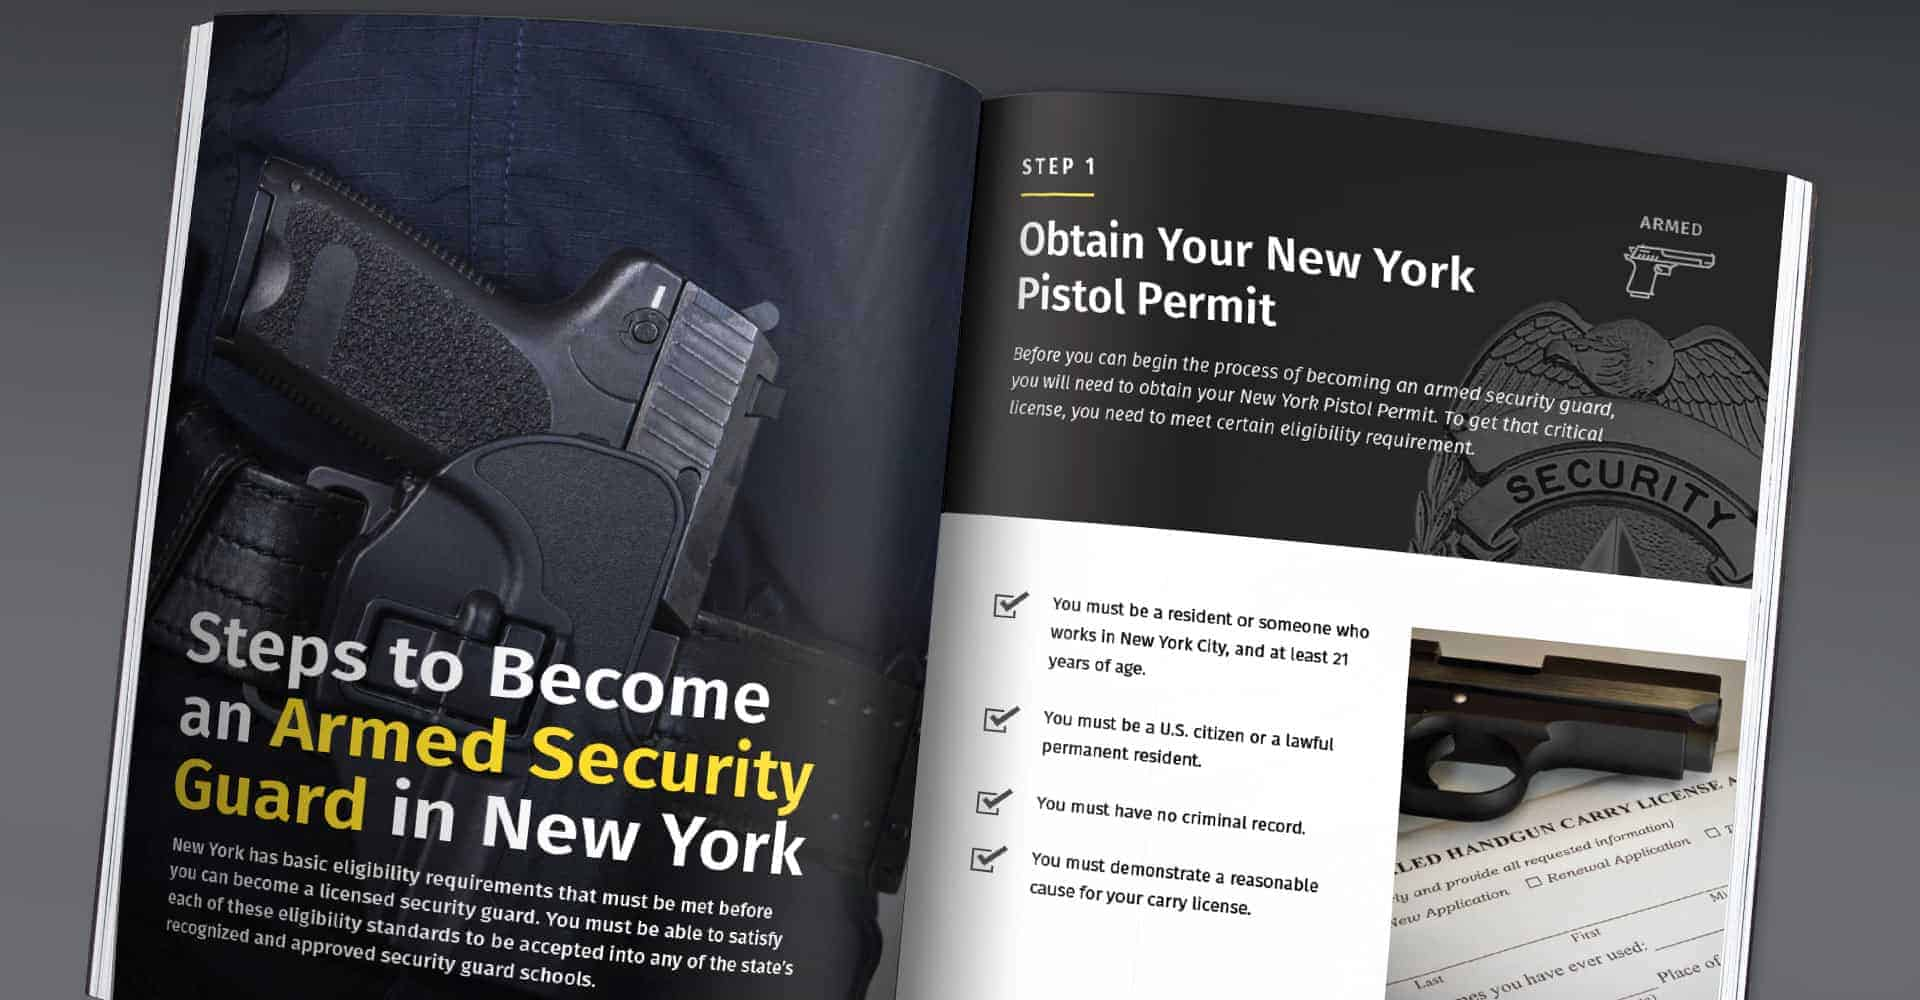 How to become a security guard in New York State